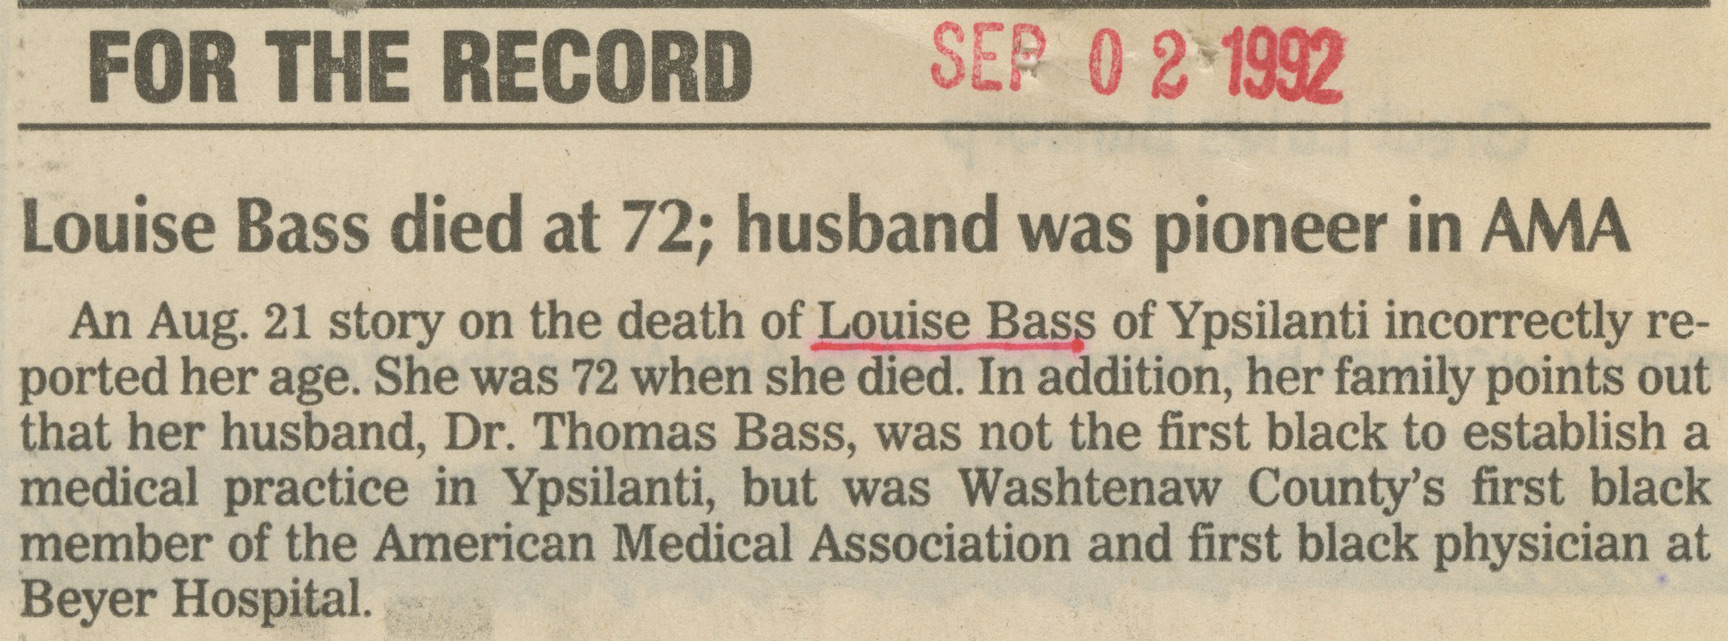 Louise Bass died at 72; husband was pioneer in AMA image